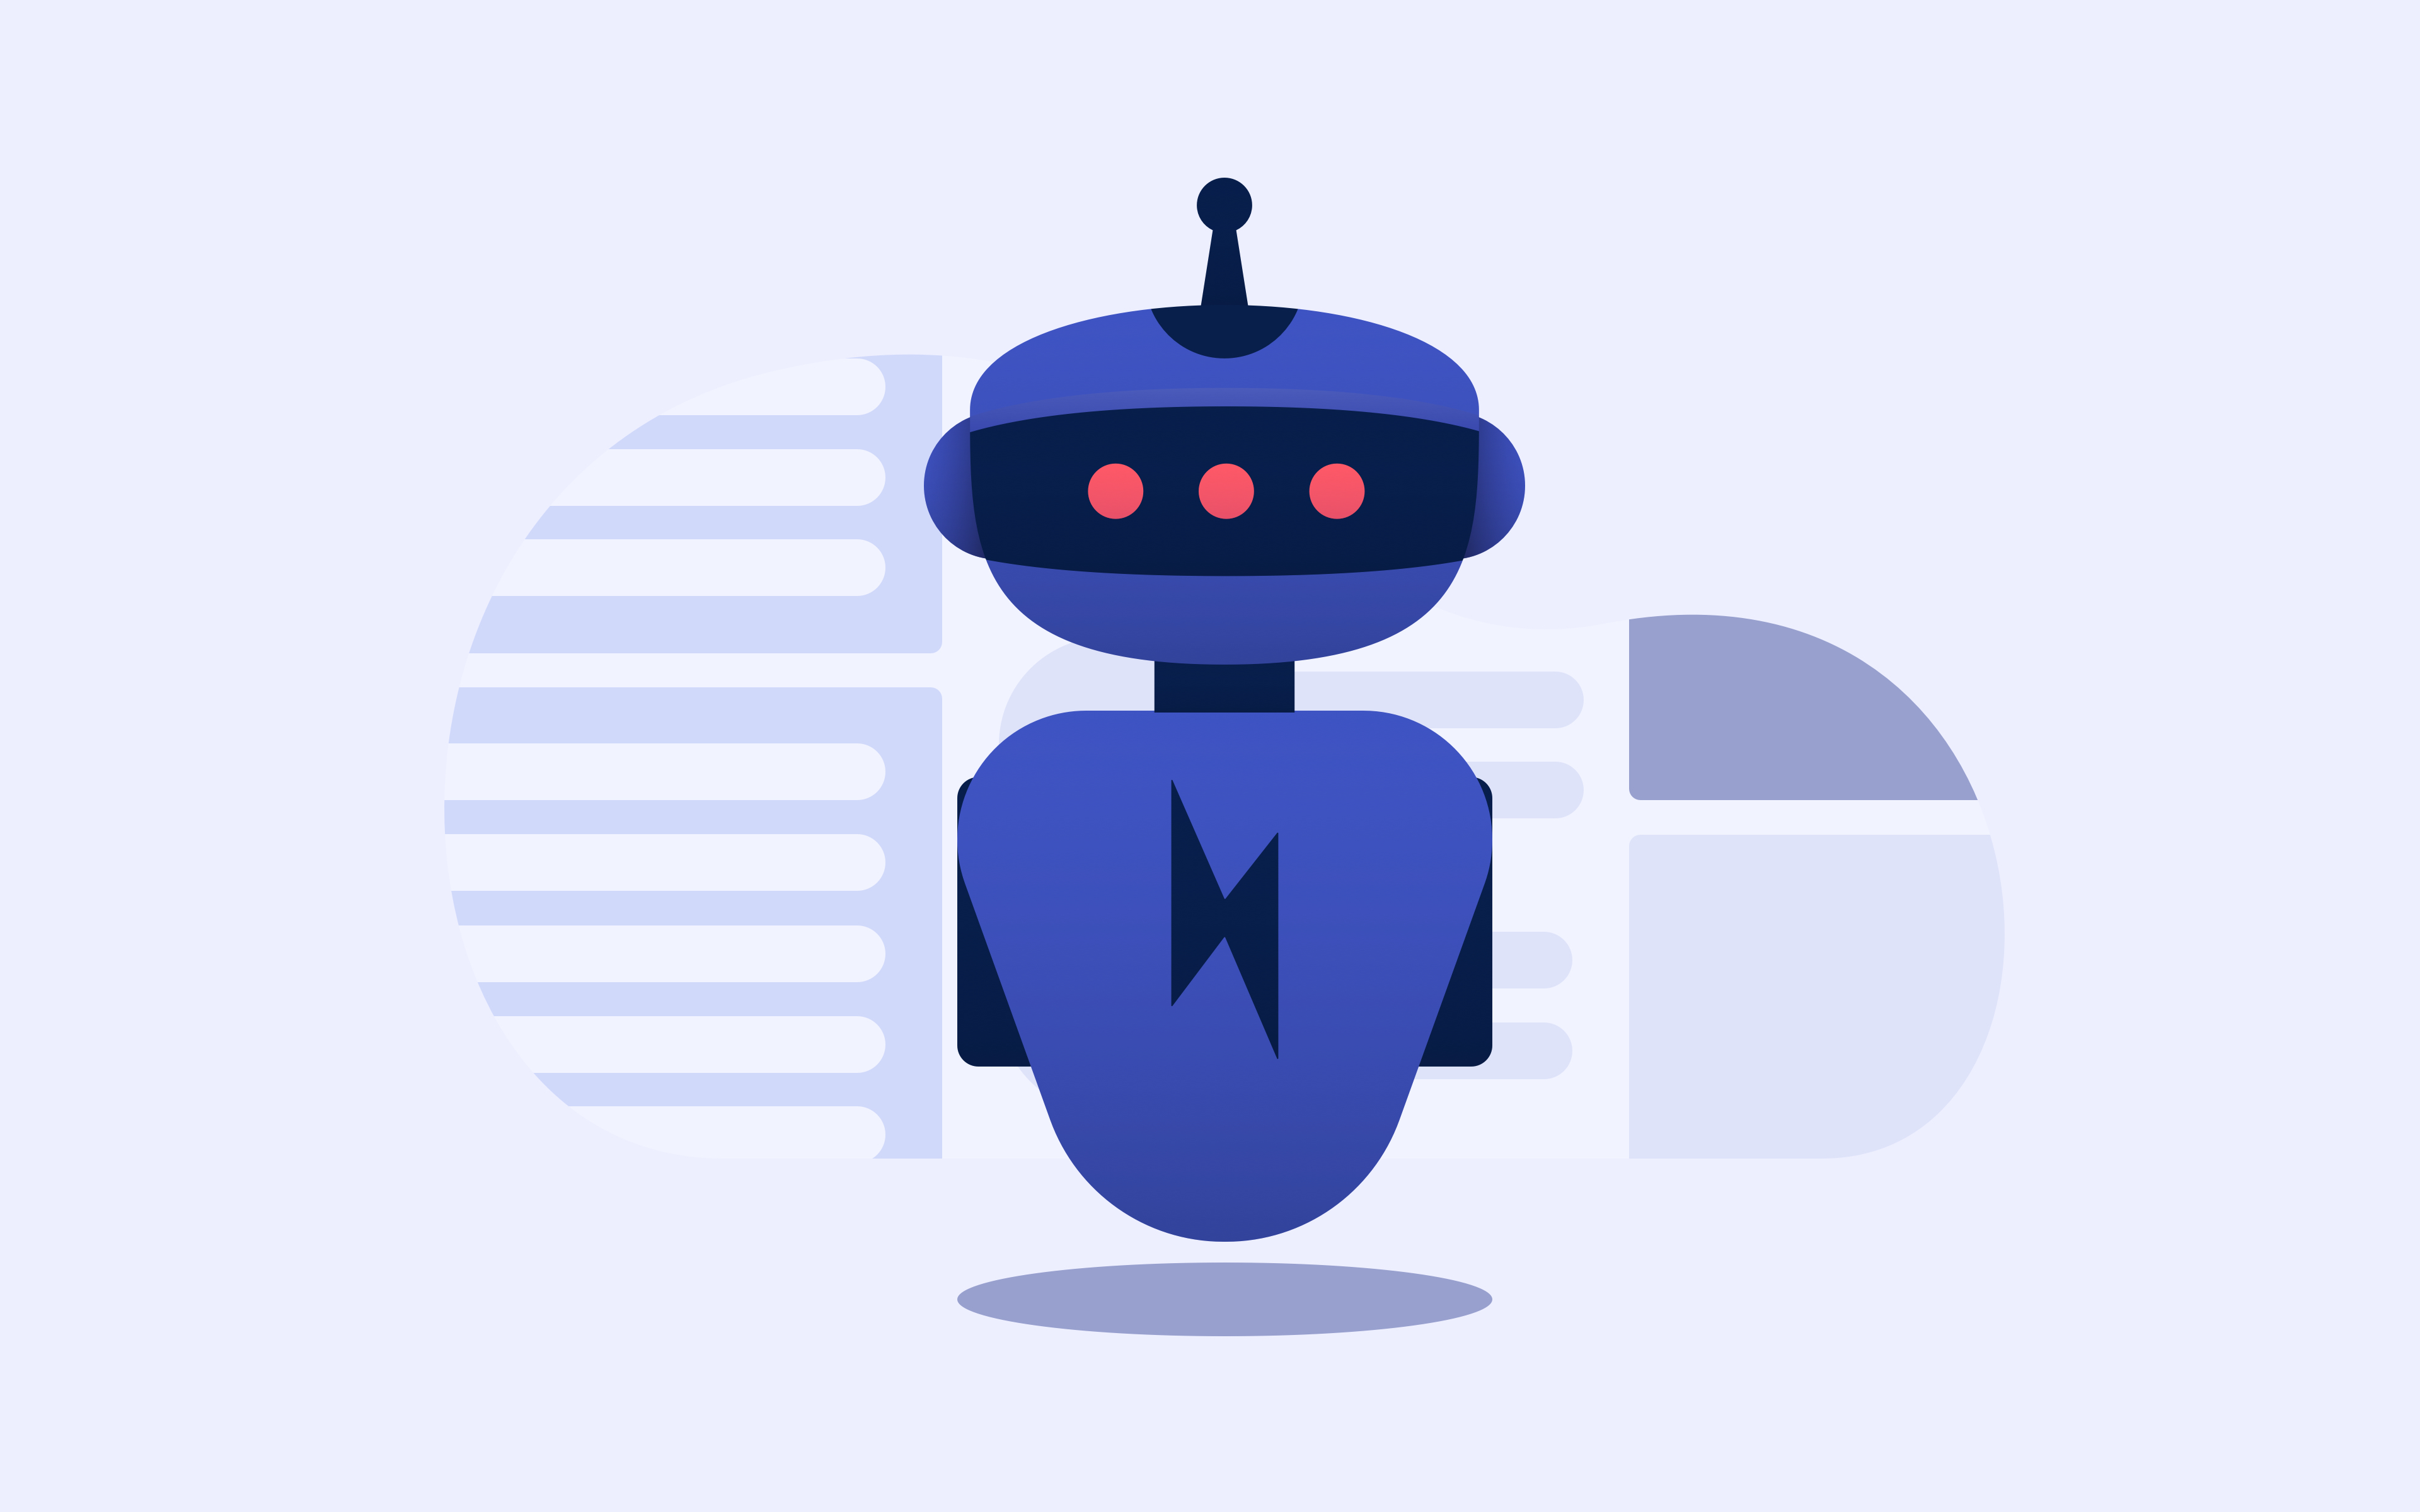 Artificial intelligence - 6 ways to use it in your business